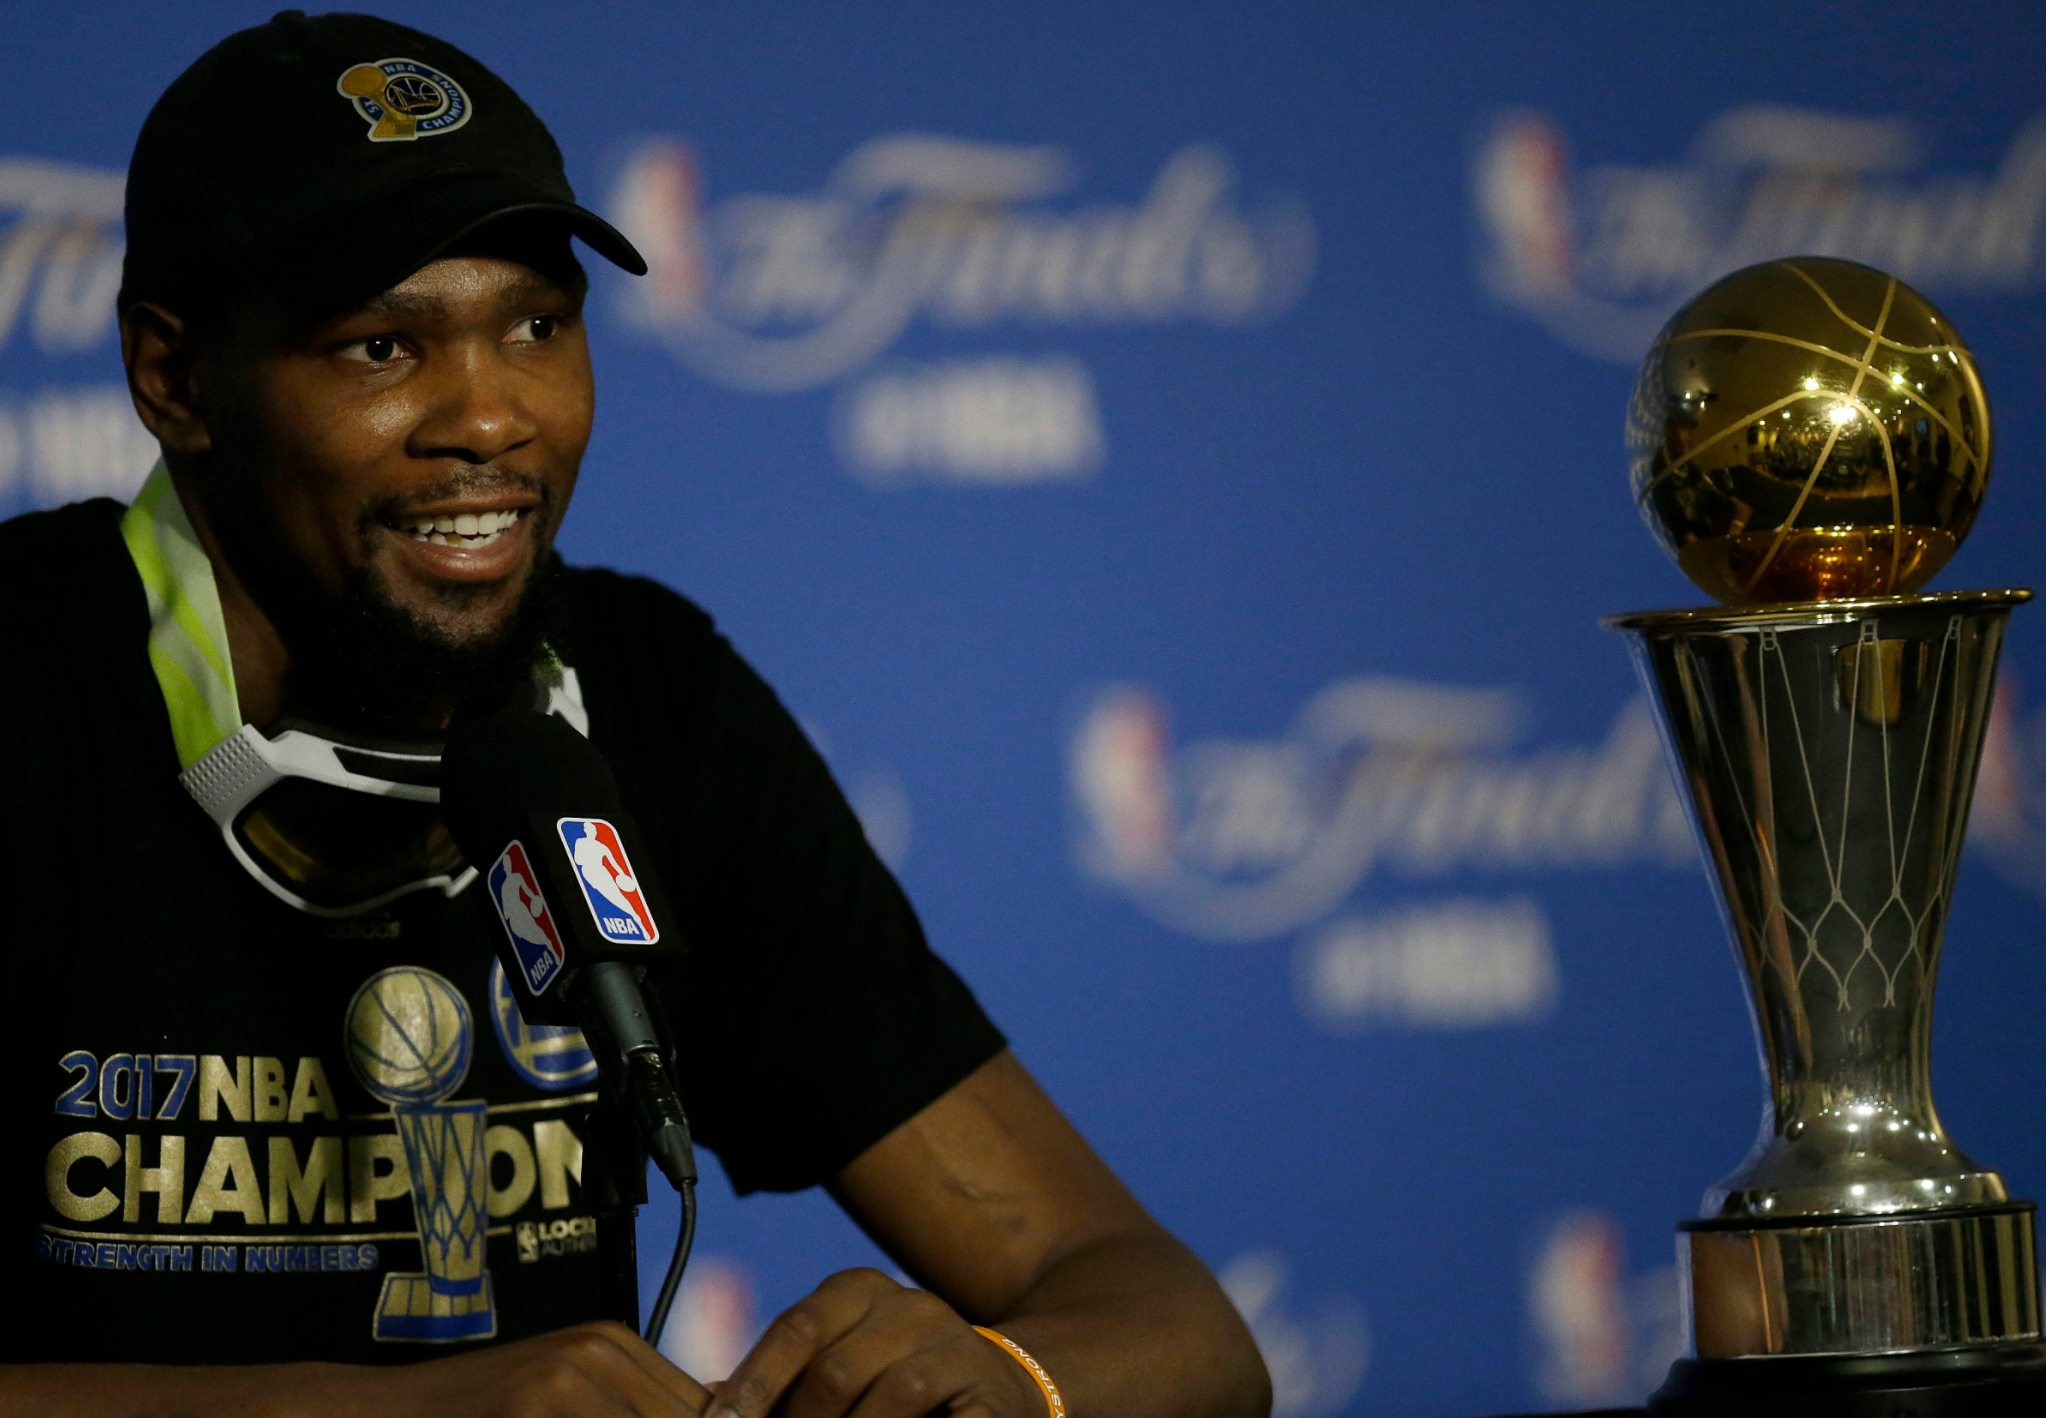 Kevin Durant 29th birthday timeline